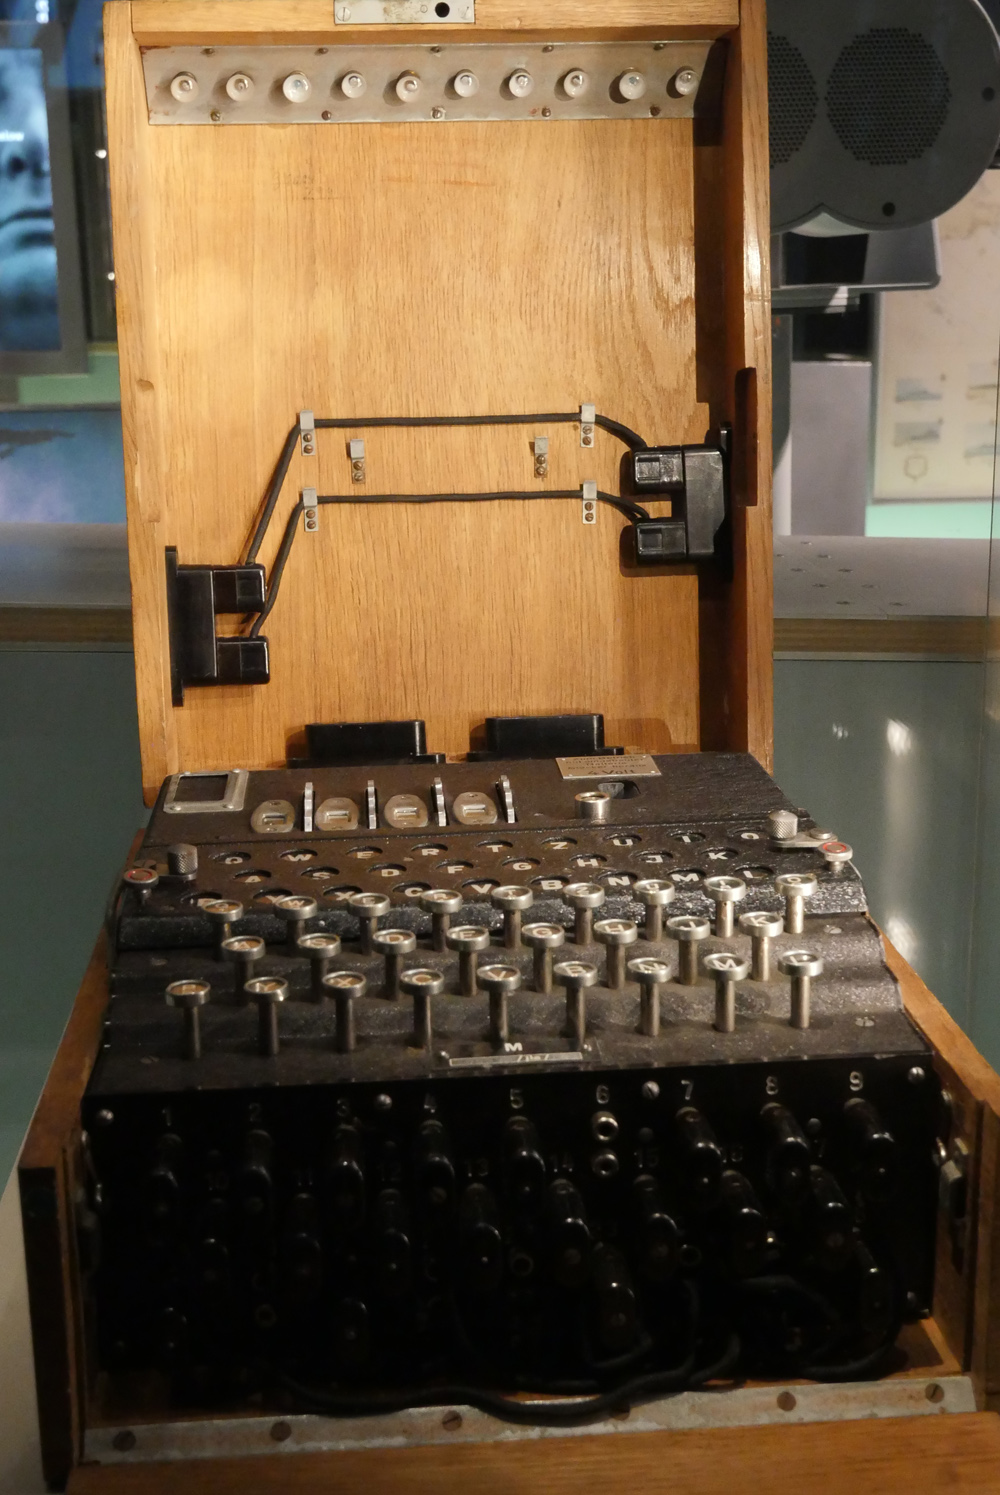 Enigma Machine at the Churchill Museum